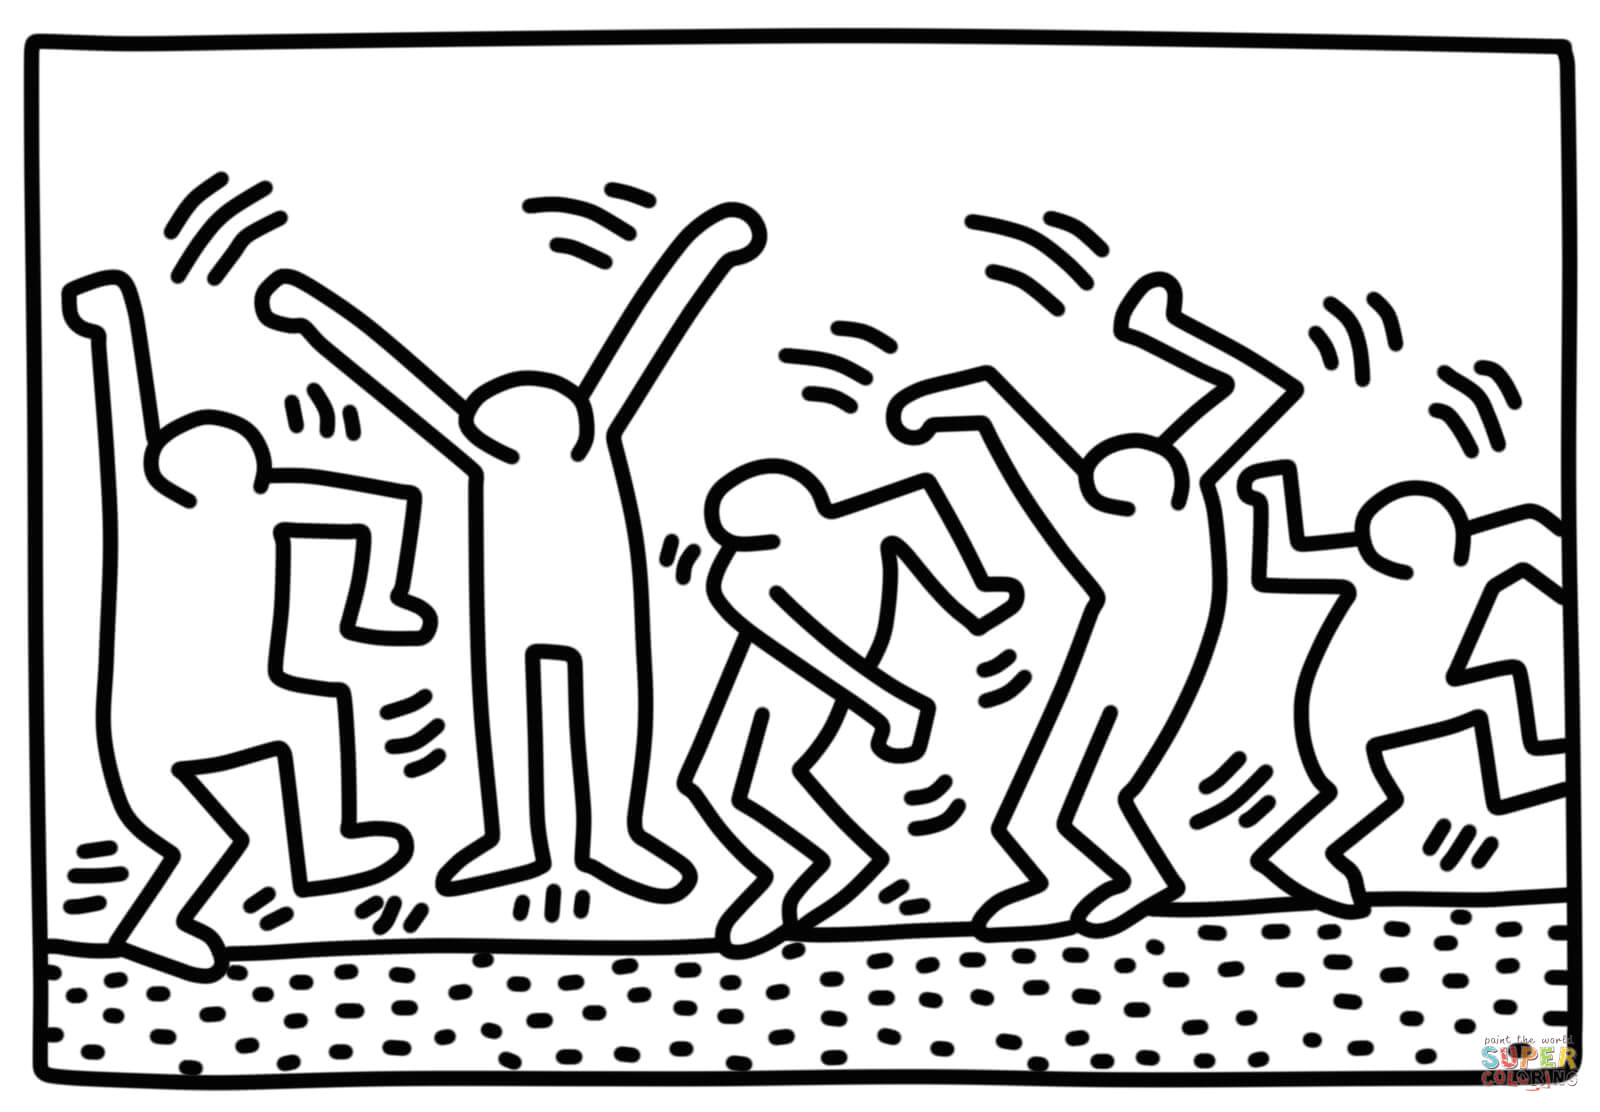 Keith Haring Figure Templates Dancing Figures by Keith Haring Coloring Page Free